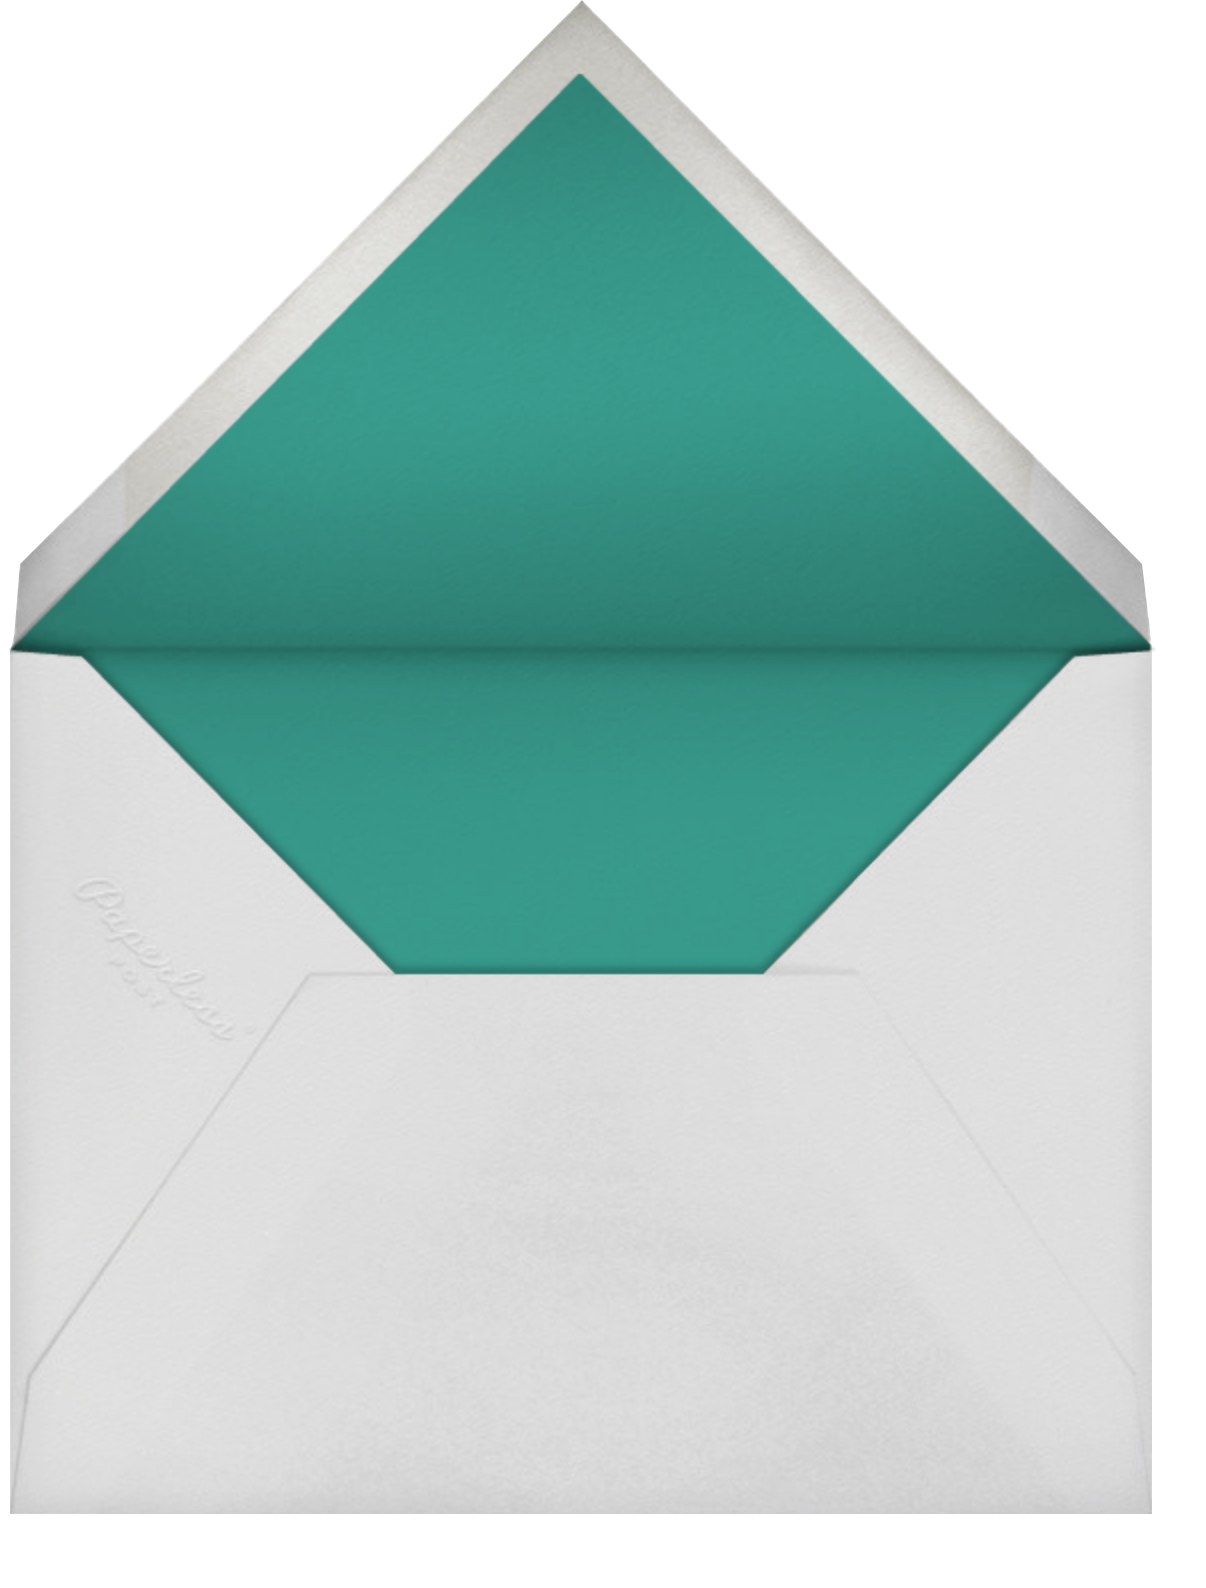 Winter Garden I (Invitation) - Hunter Green - Paperless Post - Winter parties - envelope back